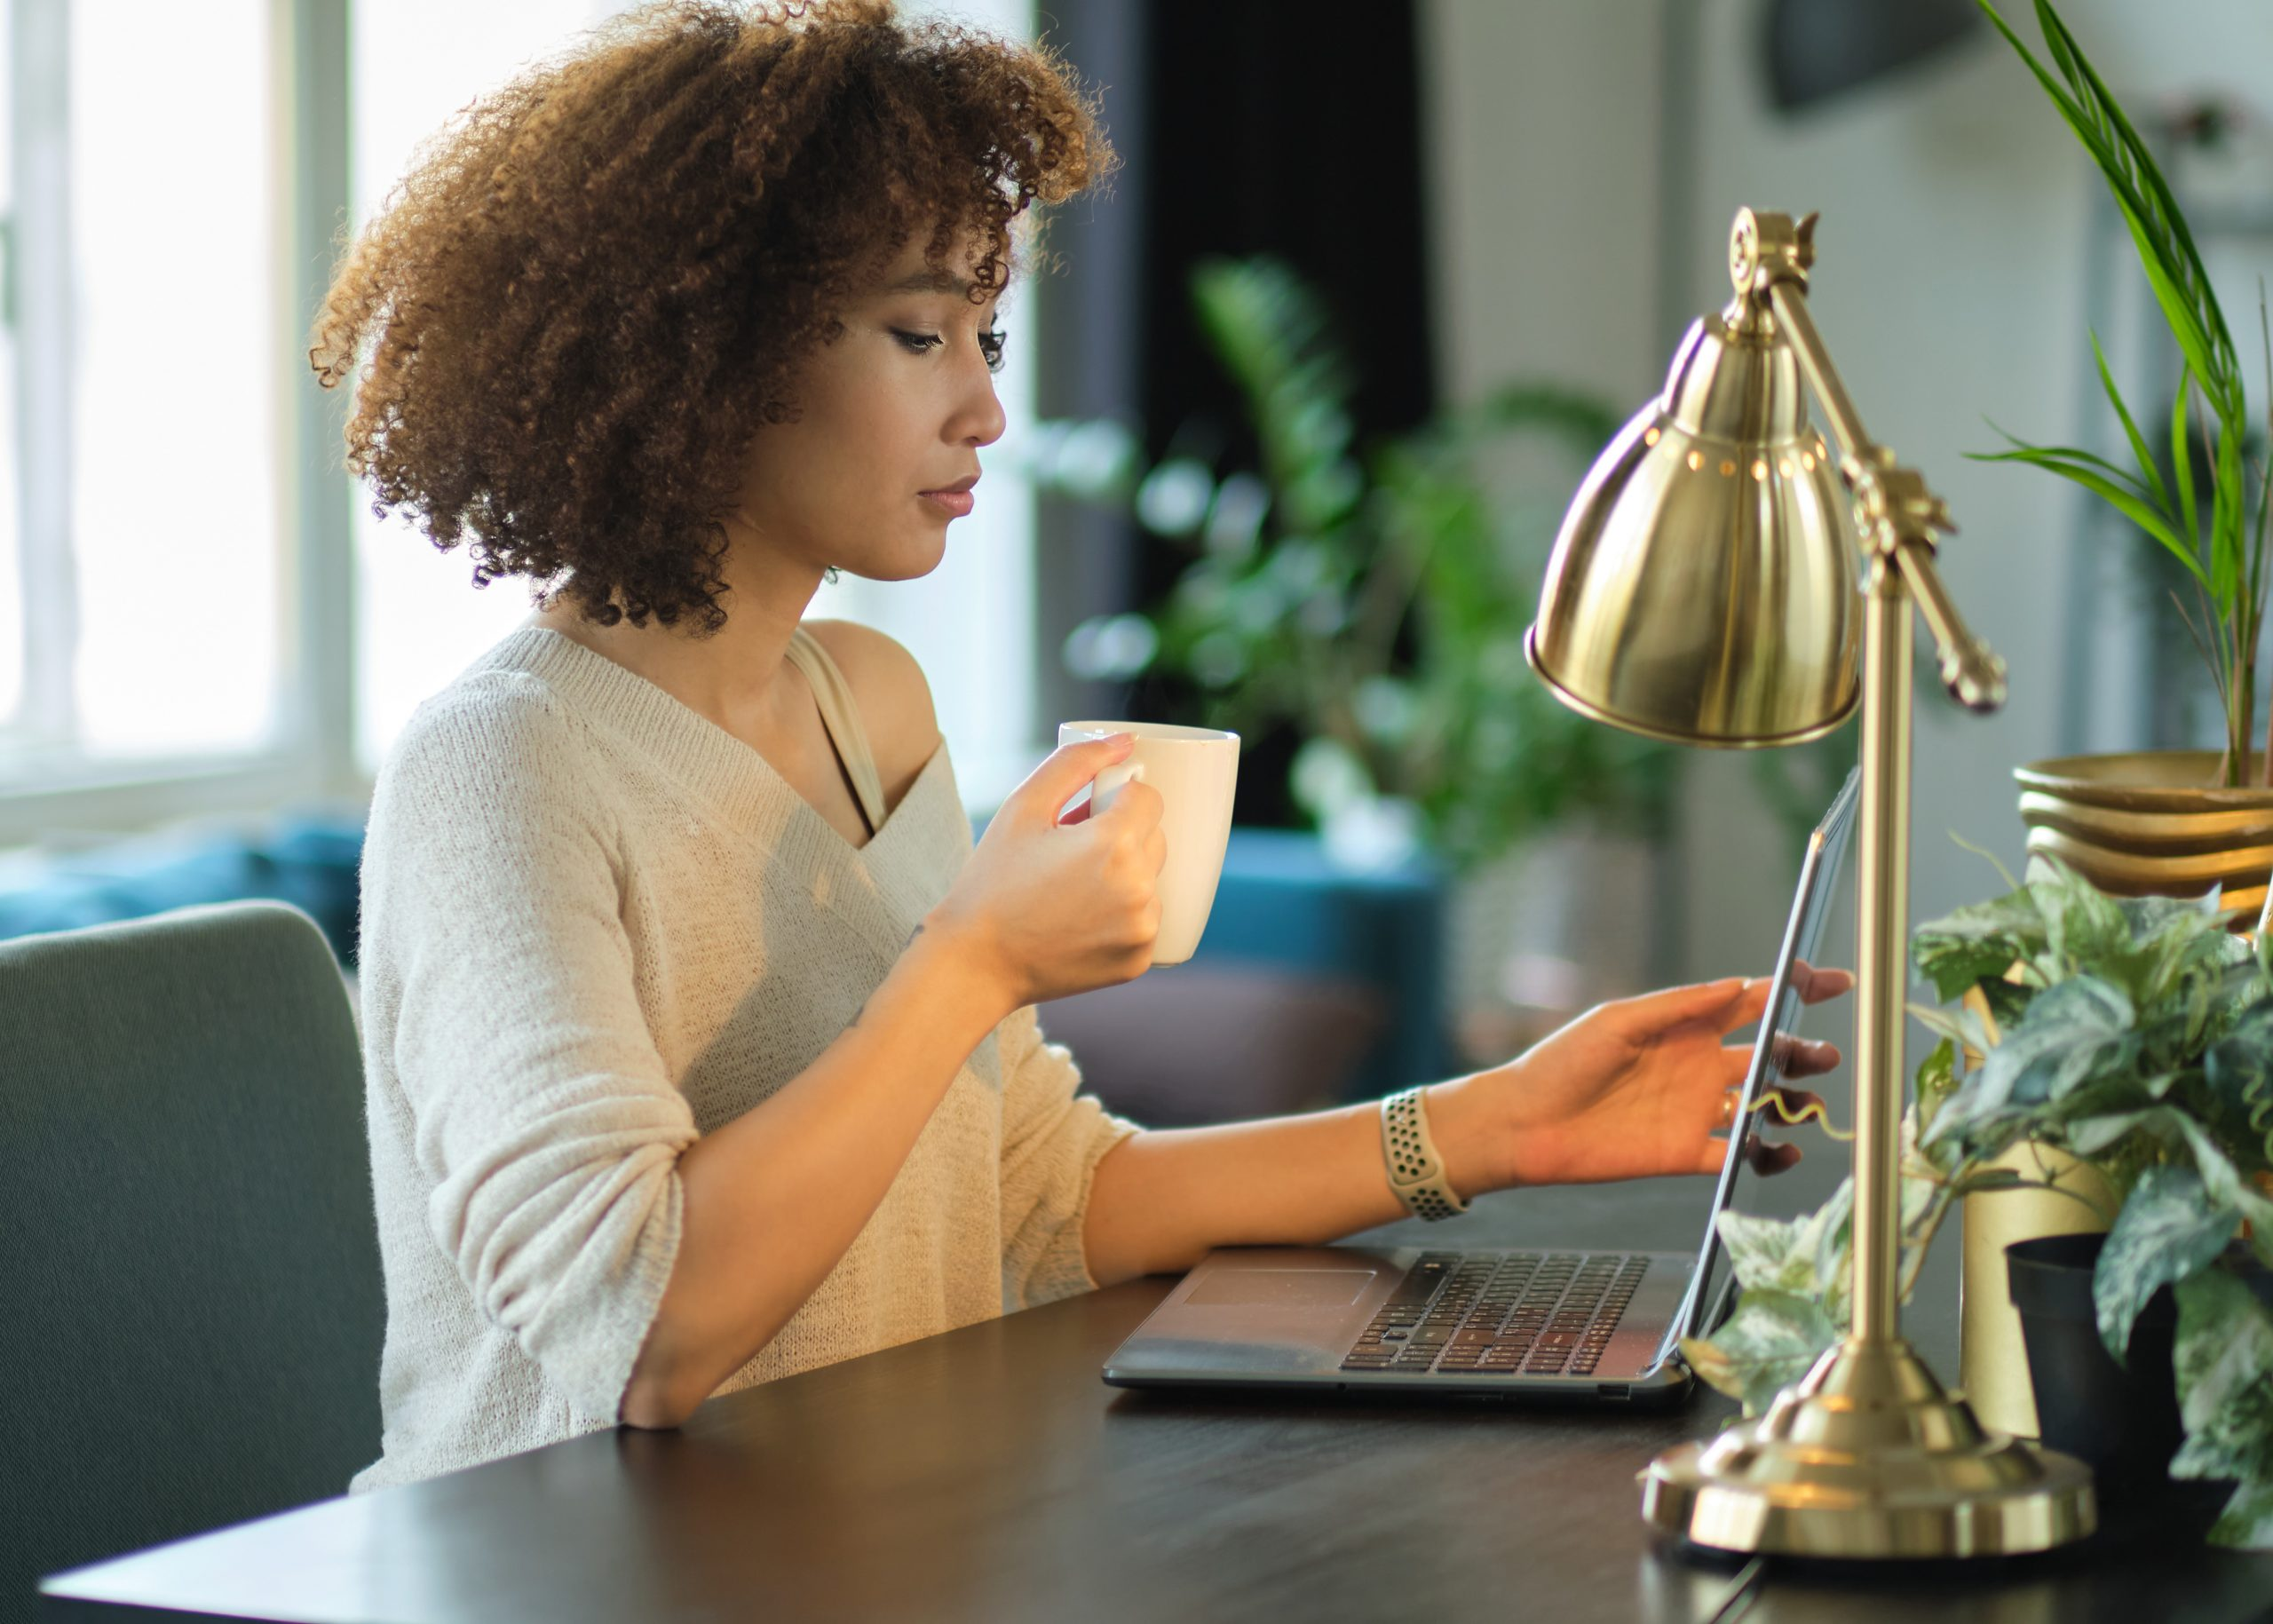 Woman working on laptop. Link takes you to the Bank of Versailles Digital Banking page.